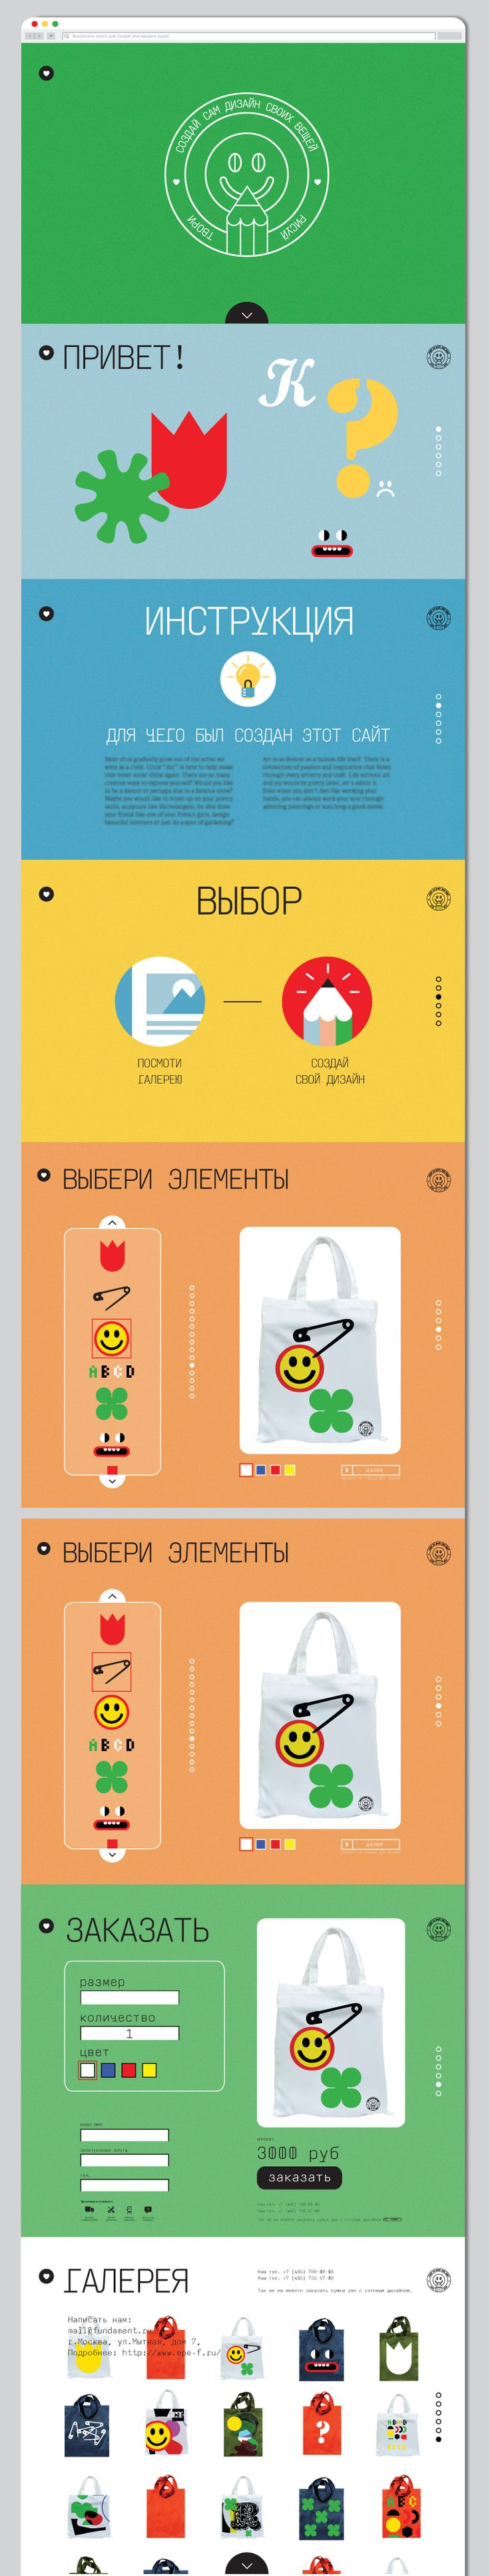 Design of the bags (в стадии разработки) on Behance